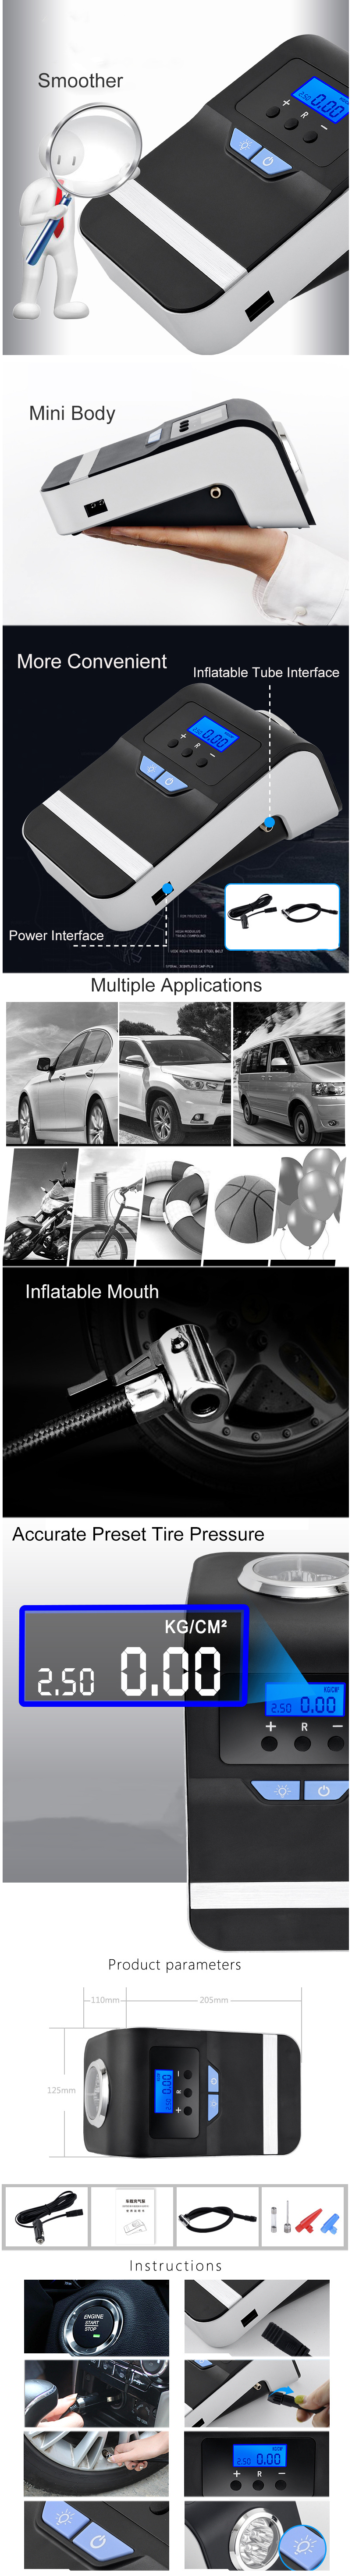 Intelligent Air Pump 12V 120W Big Screen LED Lighting 3 Modes Accurate Preset Tire Pressure for Bicycle/ Car/ Motorcycle/ Basketball